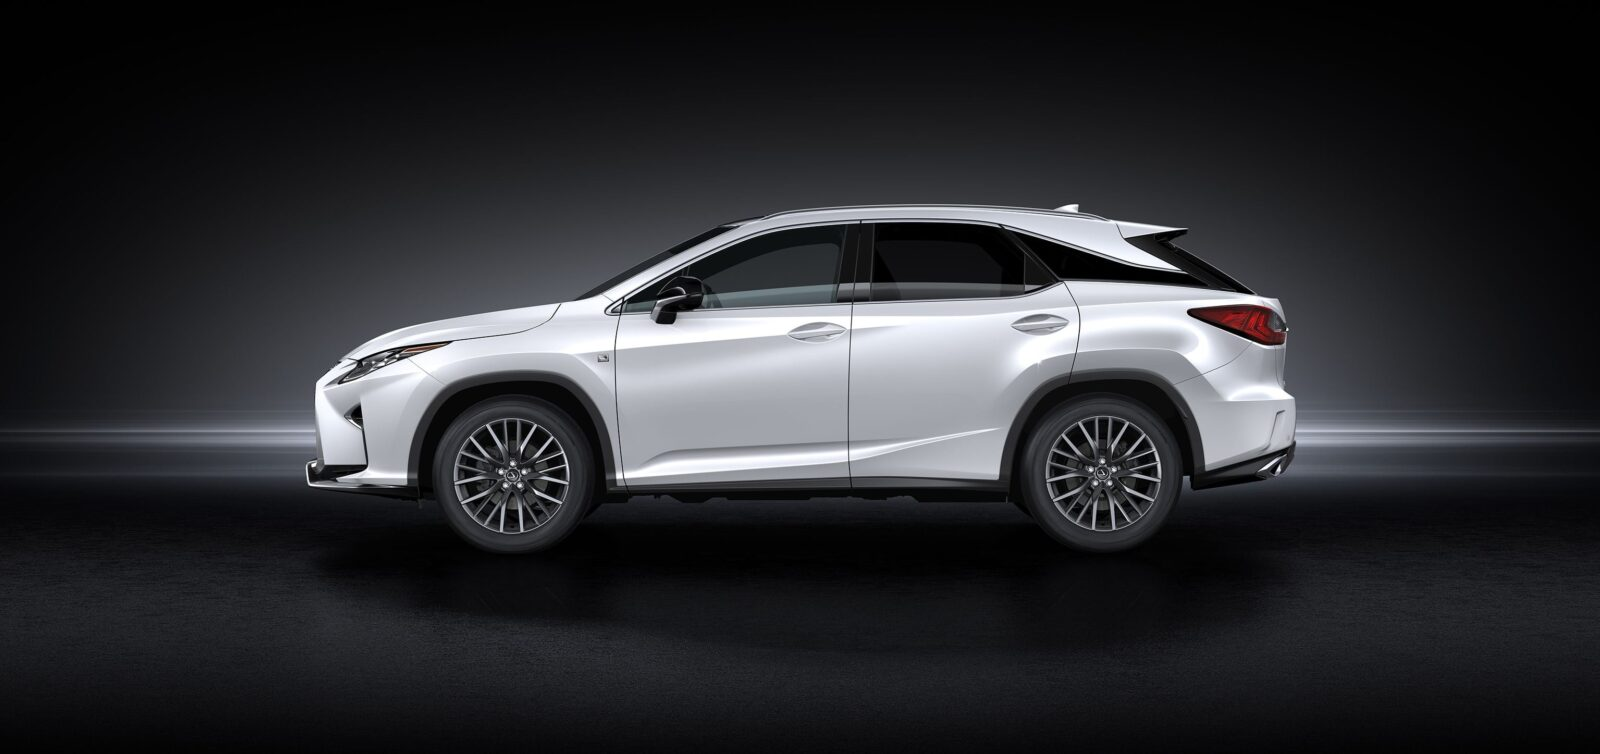 Lexus Suv Rx 350 >> Lexus RX 350 2016 wallpapers HD free Download